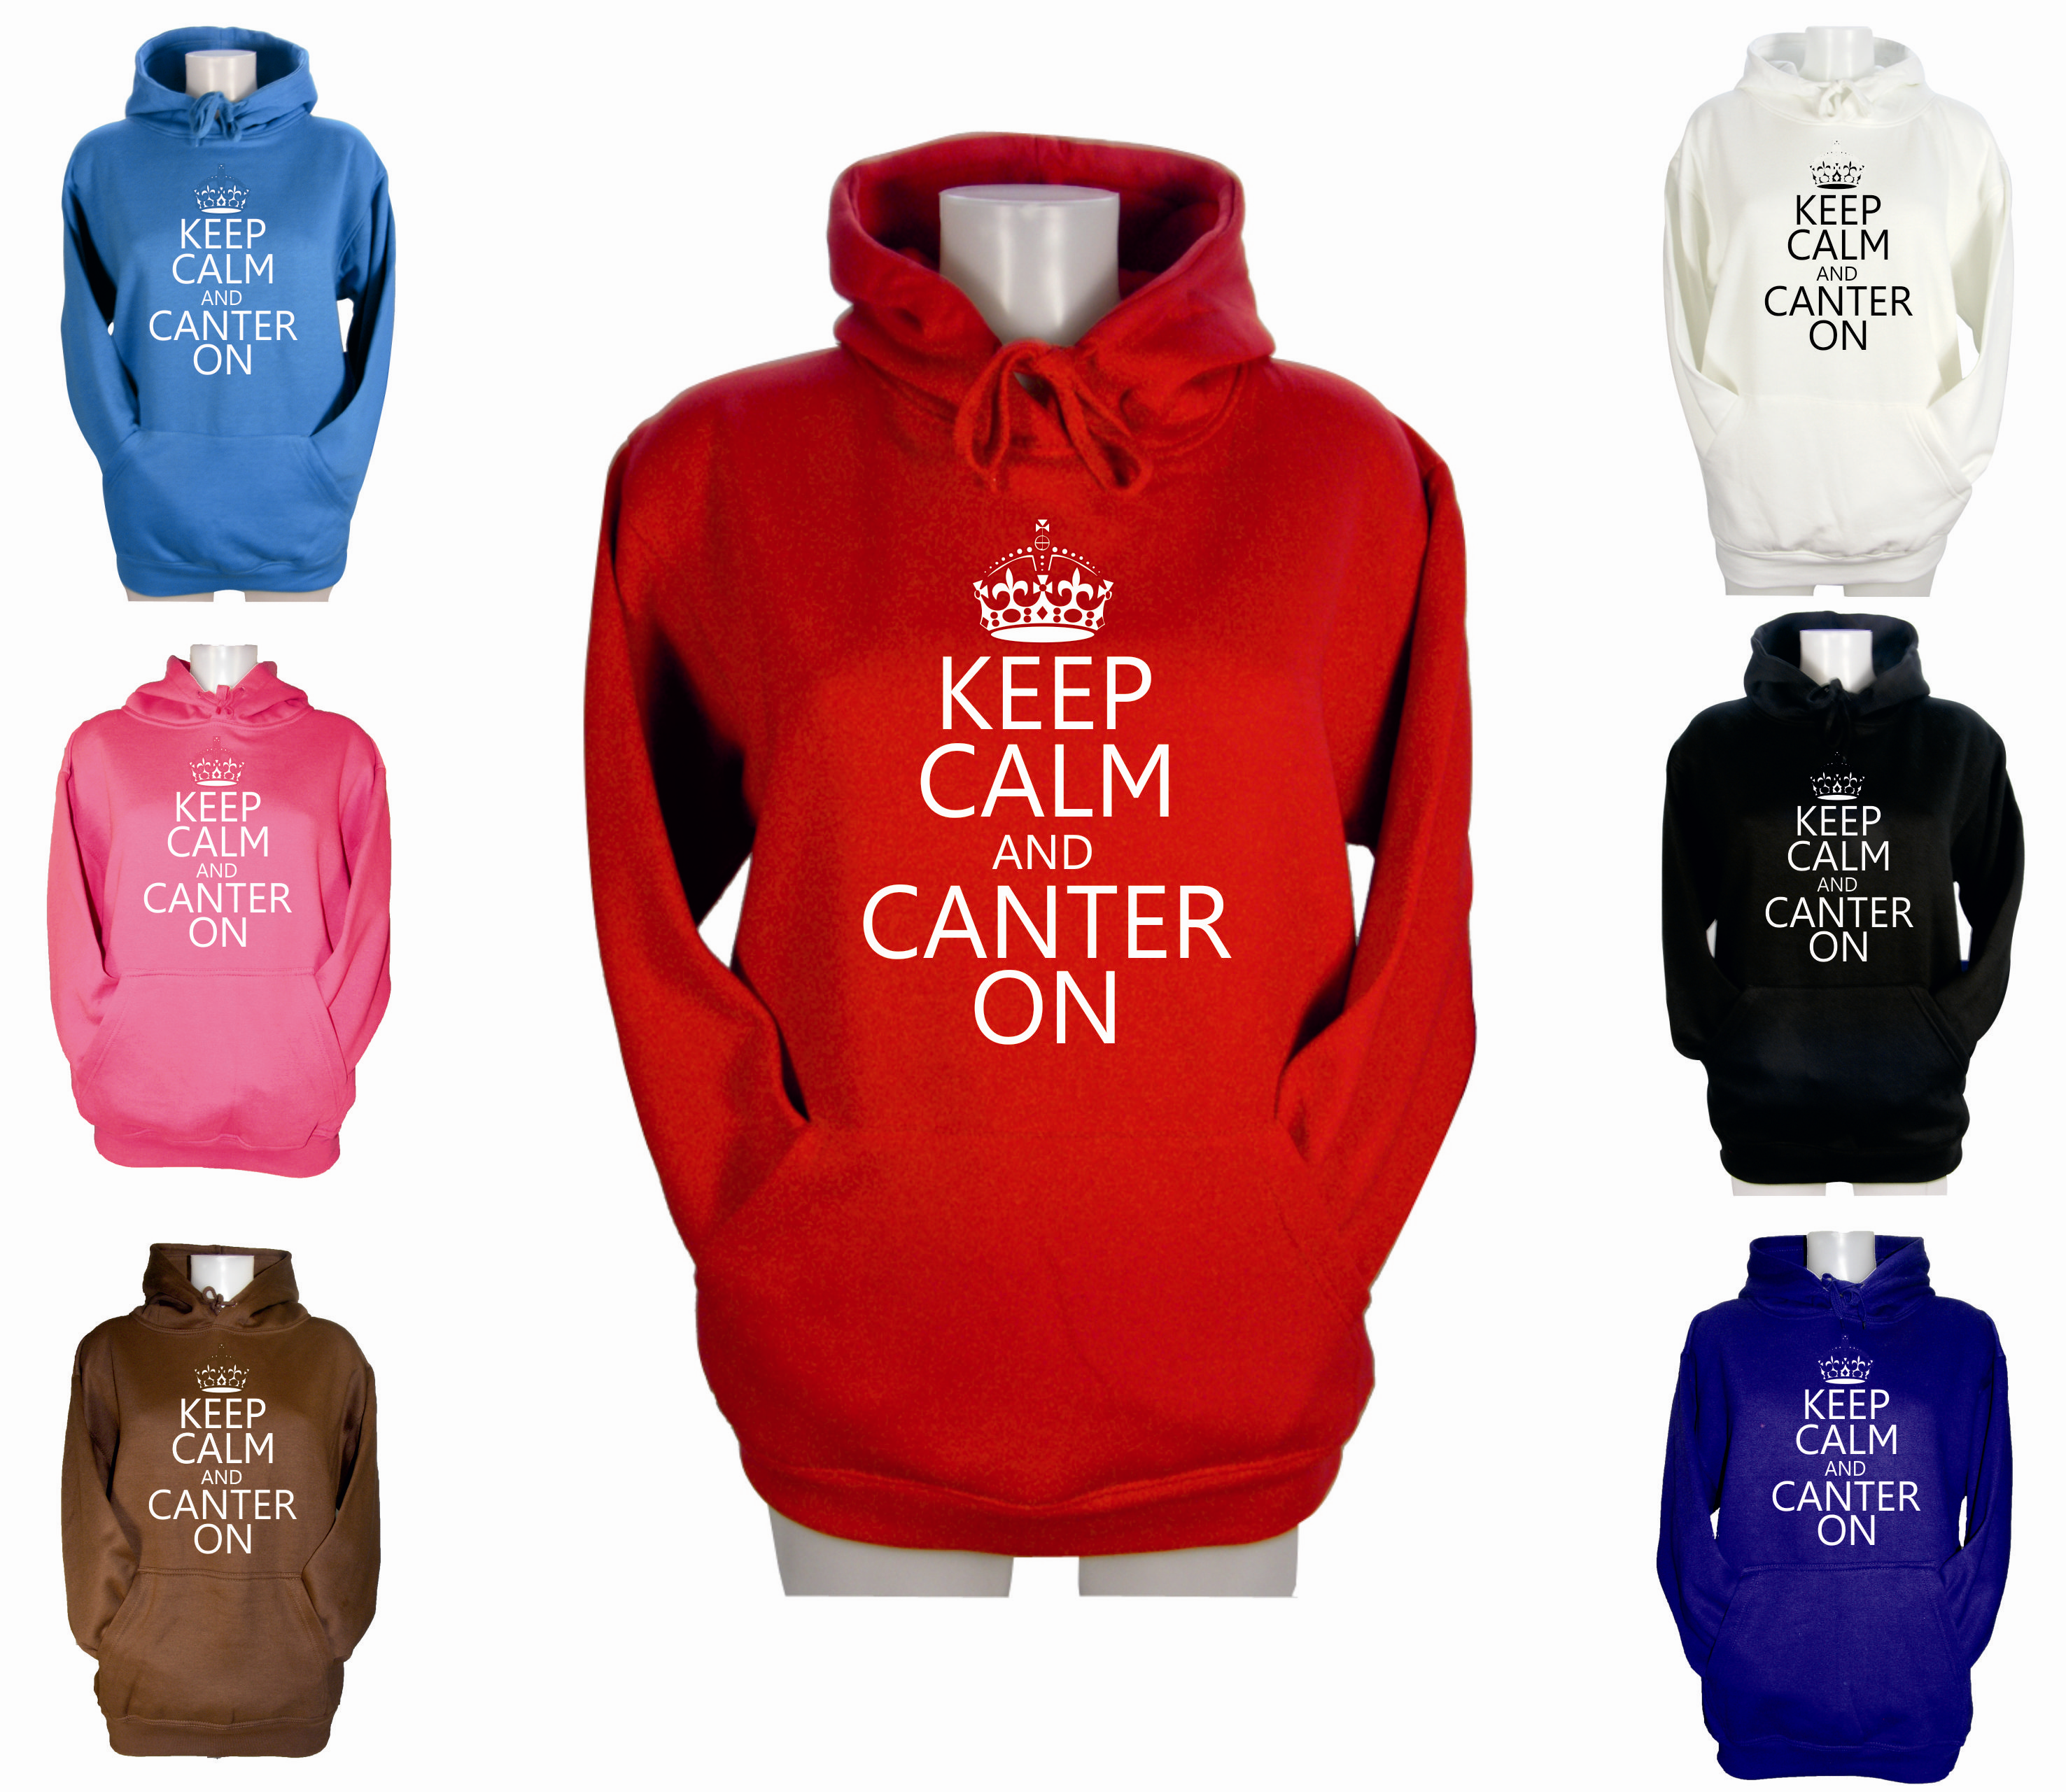 WOMENS-KEEP-CALM-AND-CANTER-ON-HOODIES-GIRLS-RIDING-JODHPURS-HOODY-XS-S-M-L-XL